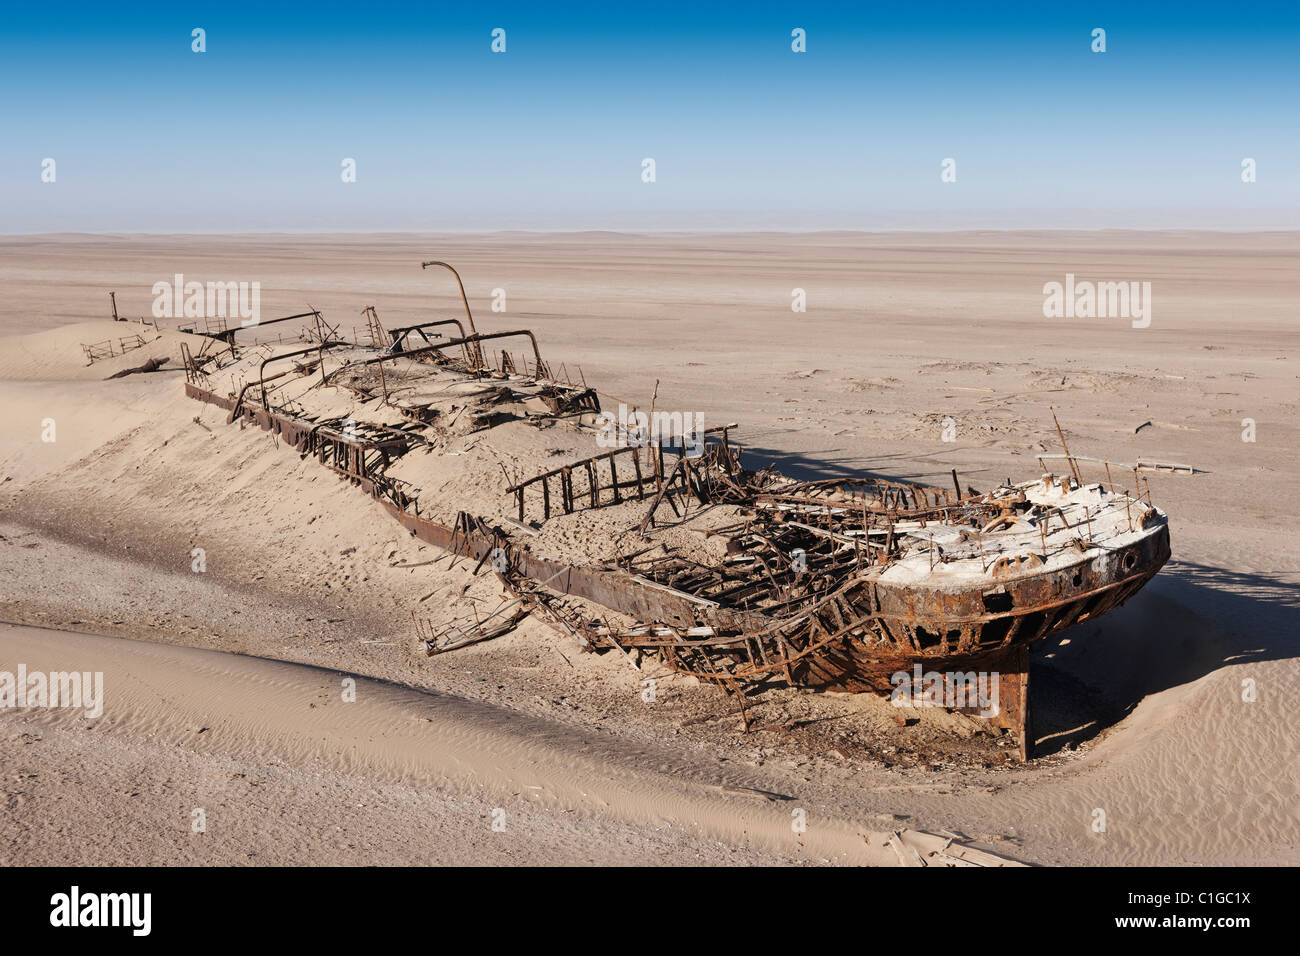 The Eduard Bolhen wreck, a supply ship for the miners that ran aground in 1909 - Stock Image